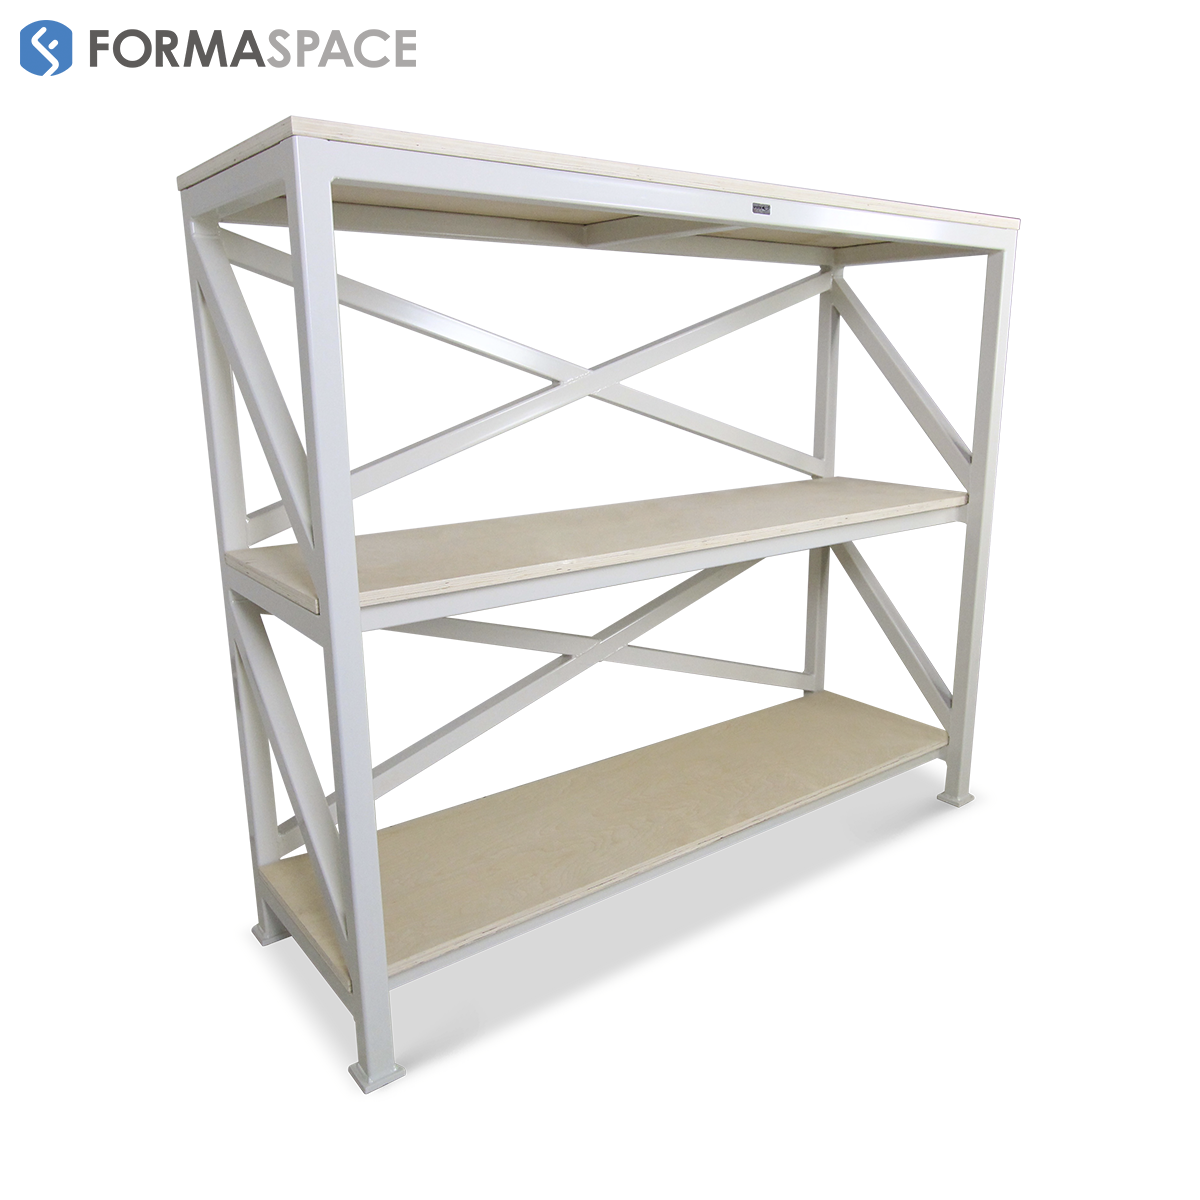 Heavy Duty Shelving System Heavy Duty Shelving Custom Furniture Shelving Unit